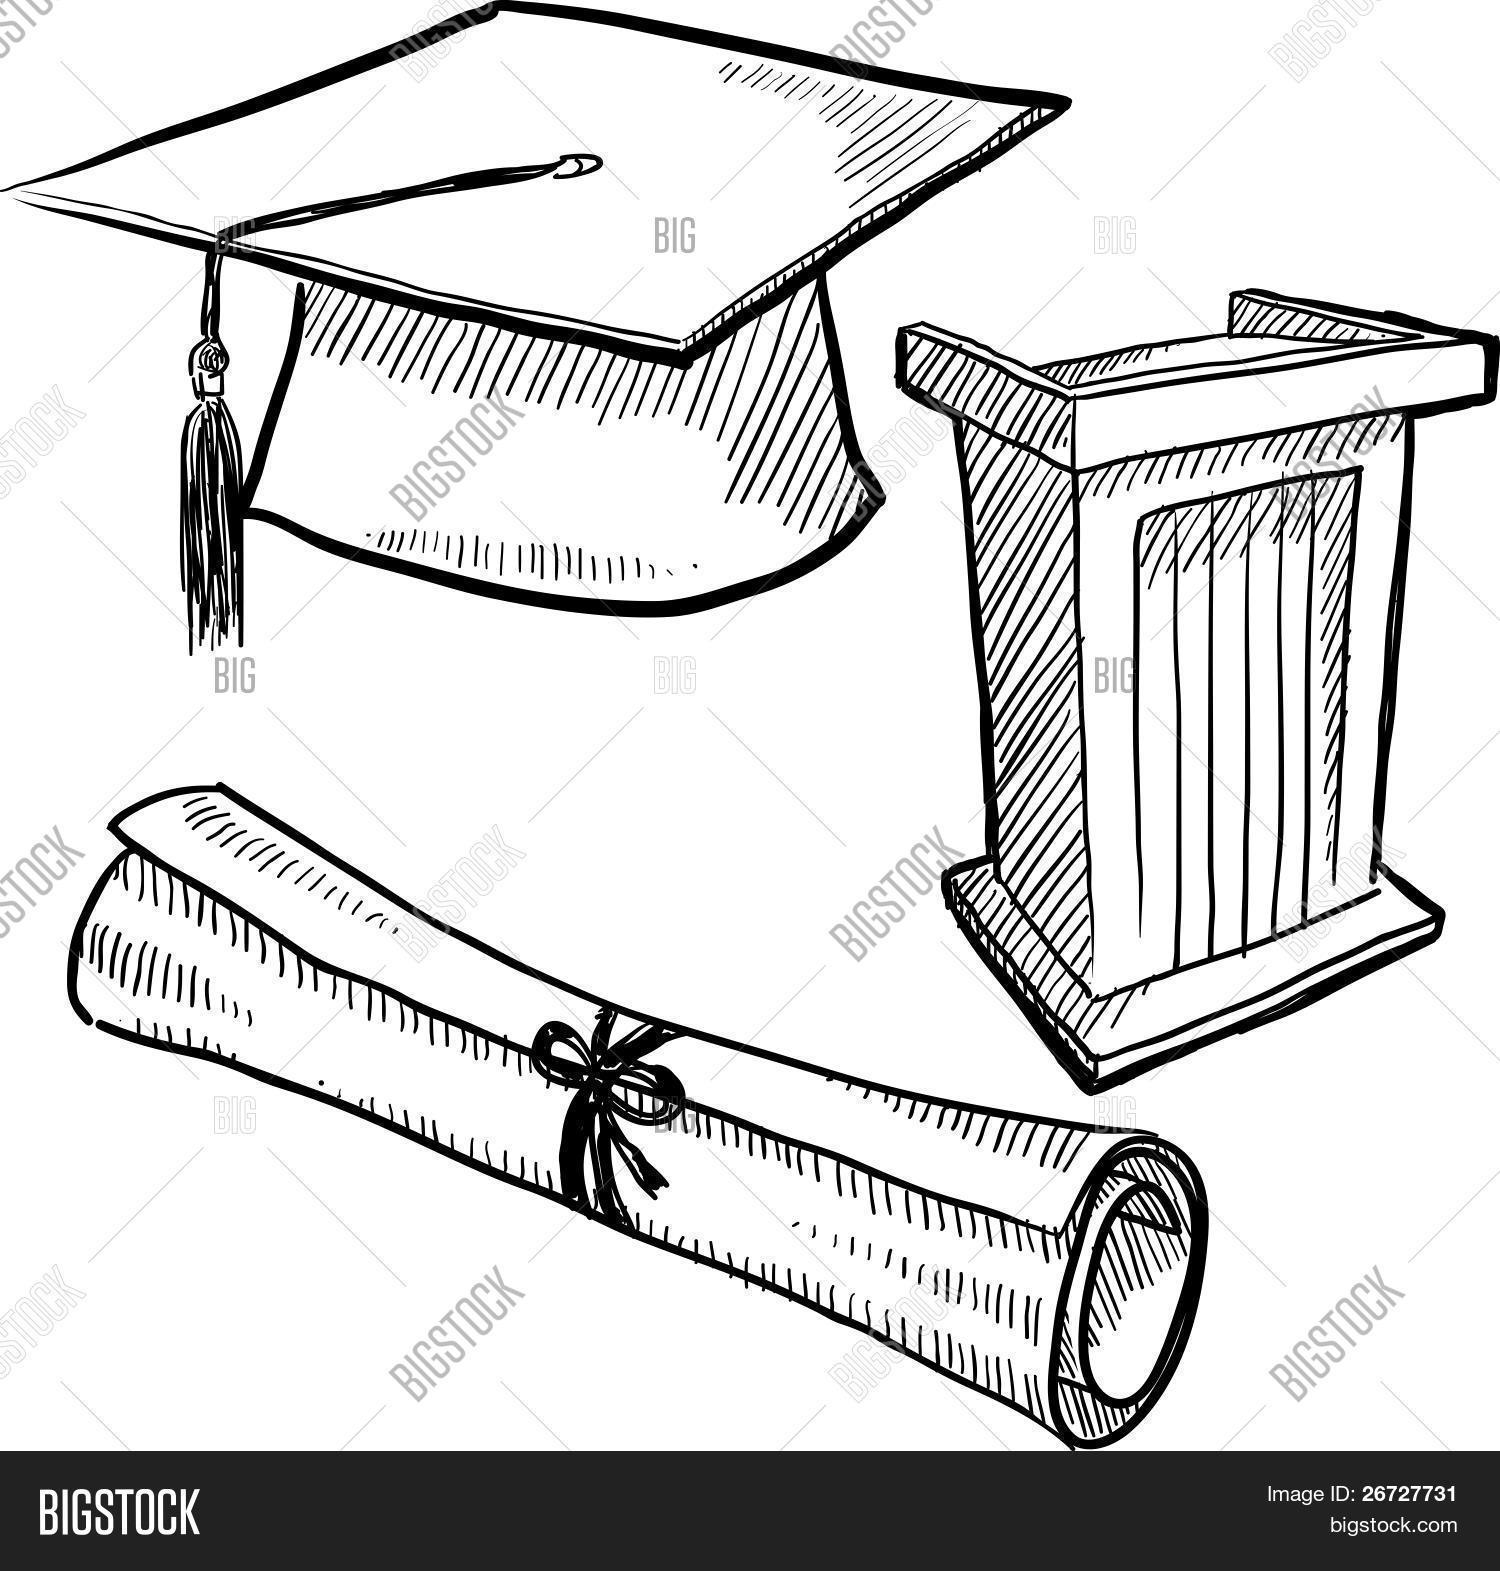 Image Gallery Graduation Sketch